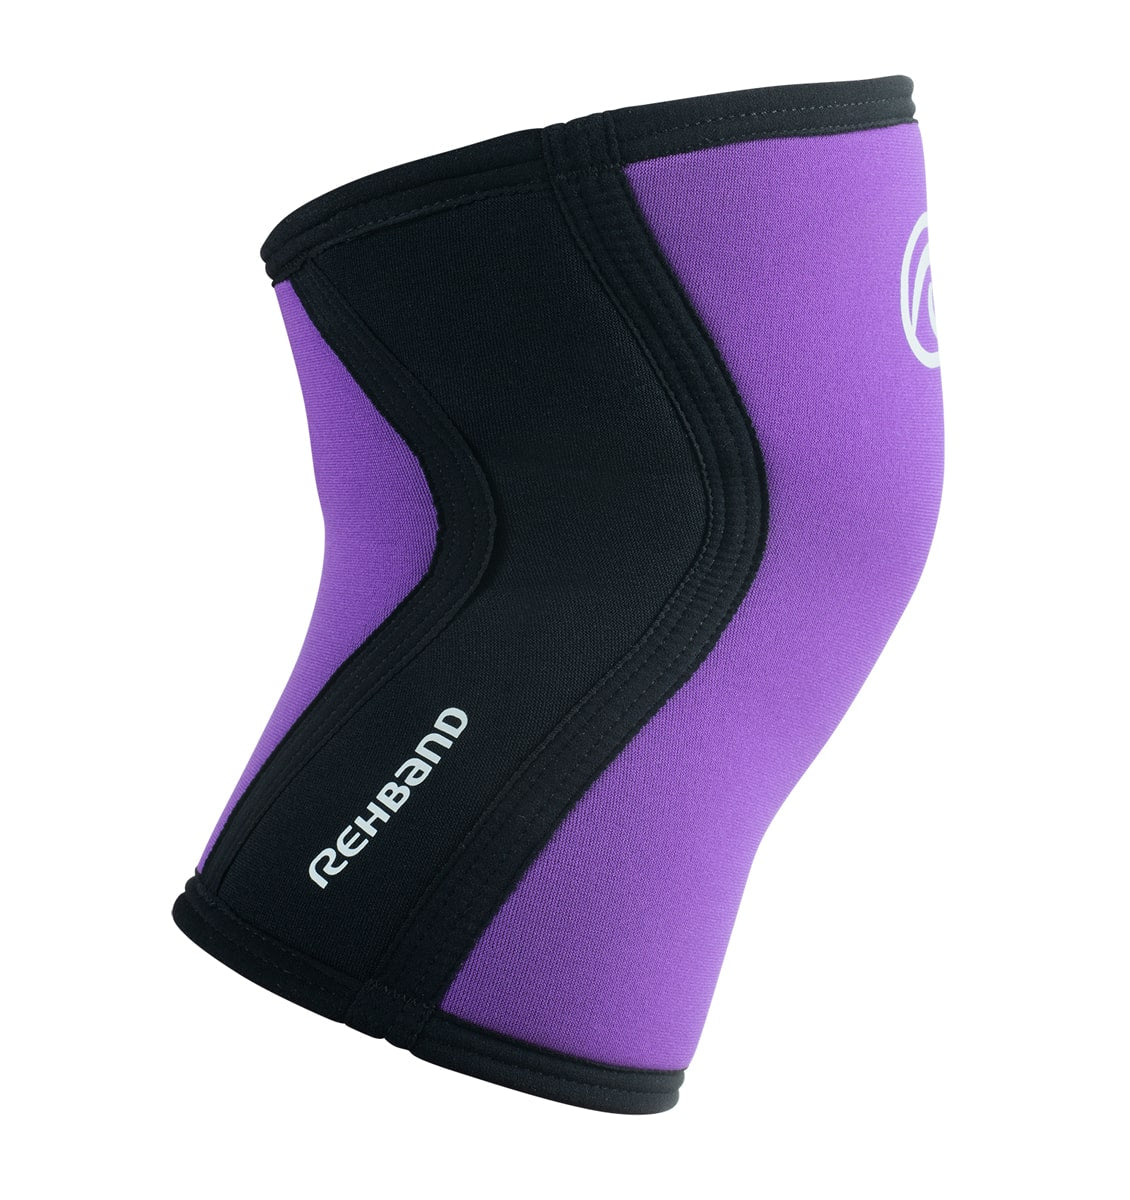 07751 - Rehband Rx Knee Sleeve - Purple/Black - 5mm - Side